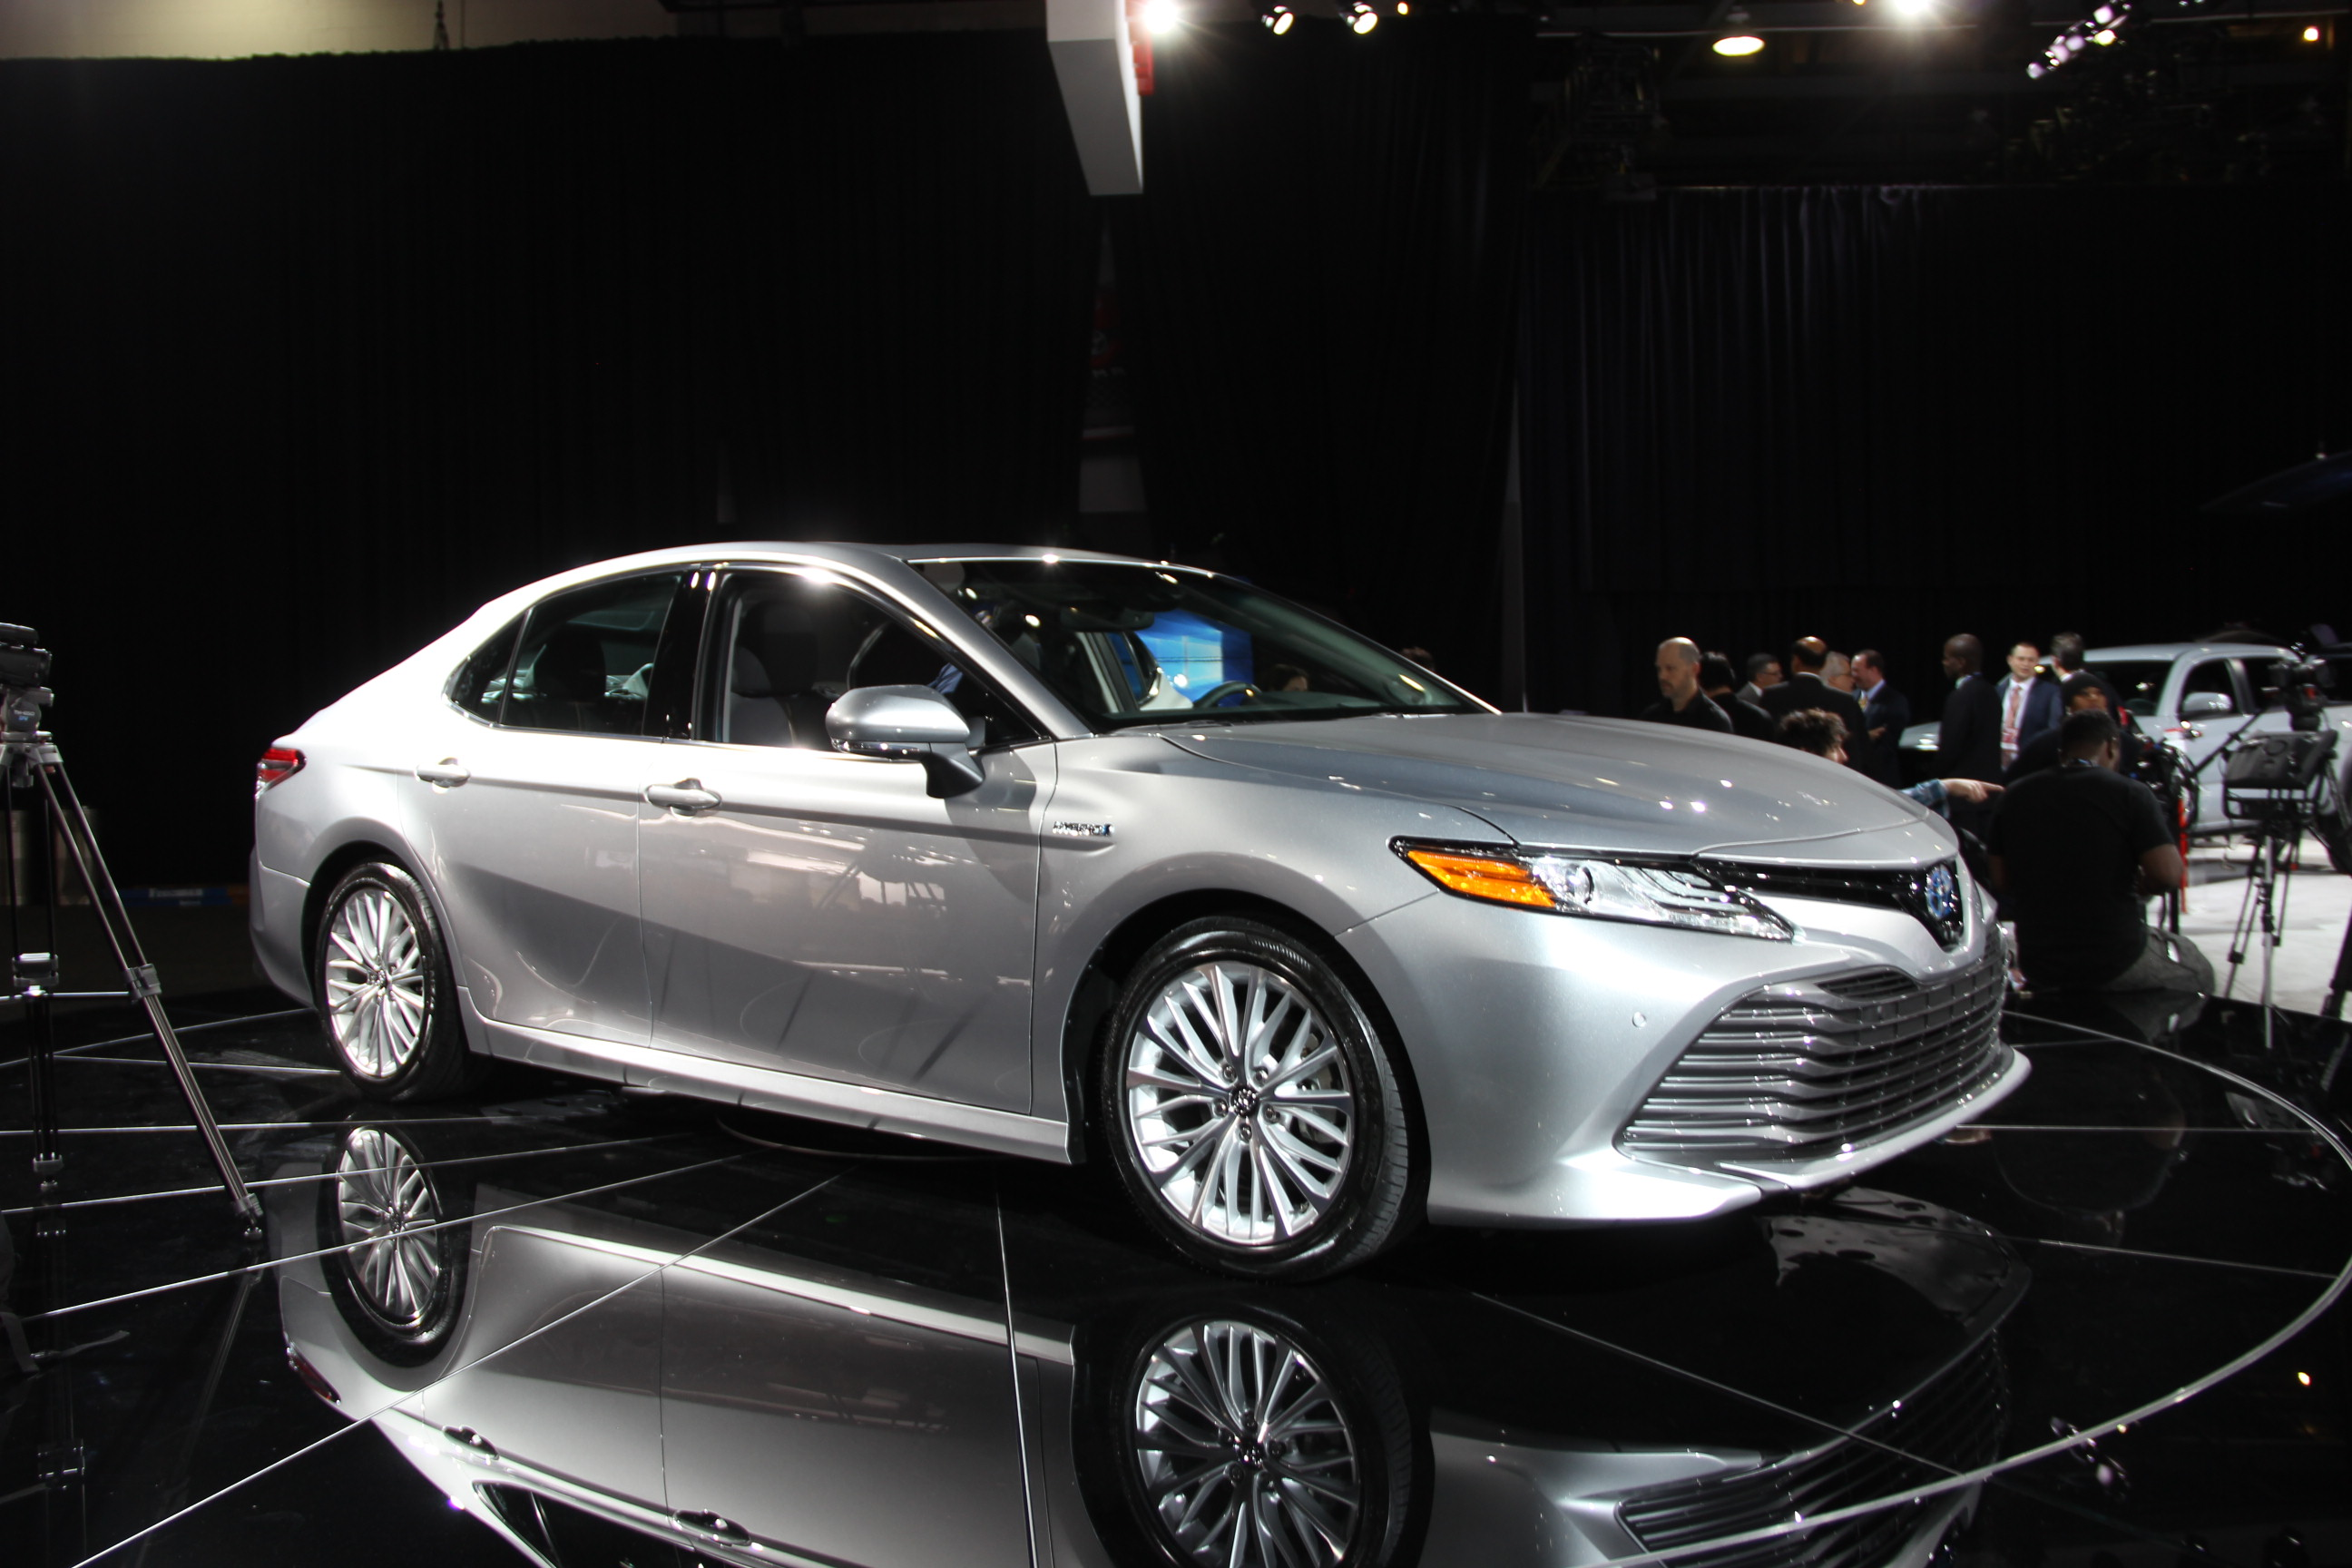 6 Interesting Cars The 2018 Toyota Camry V6 Might Nuke In A Drag